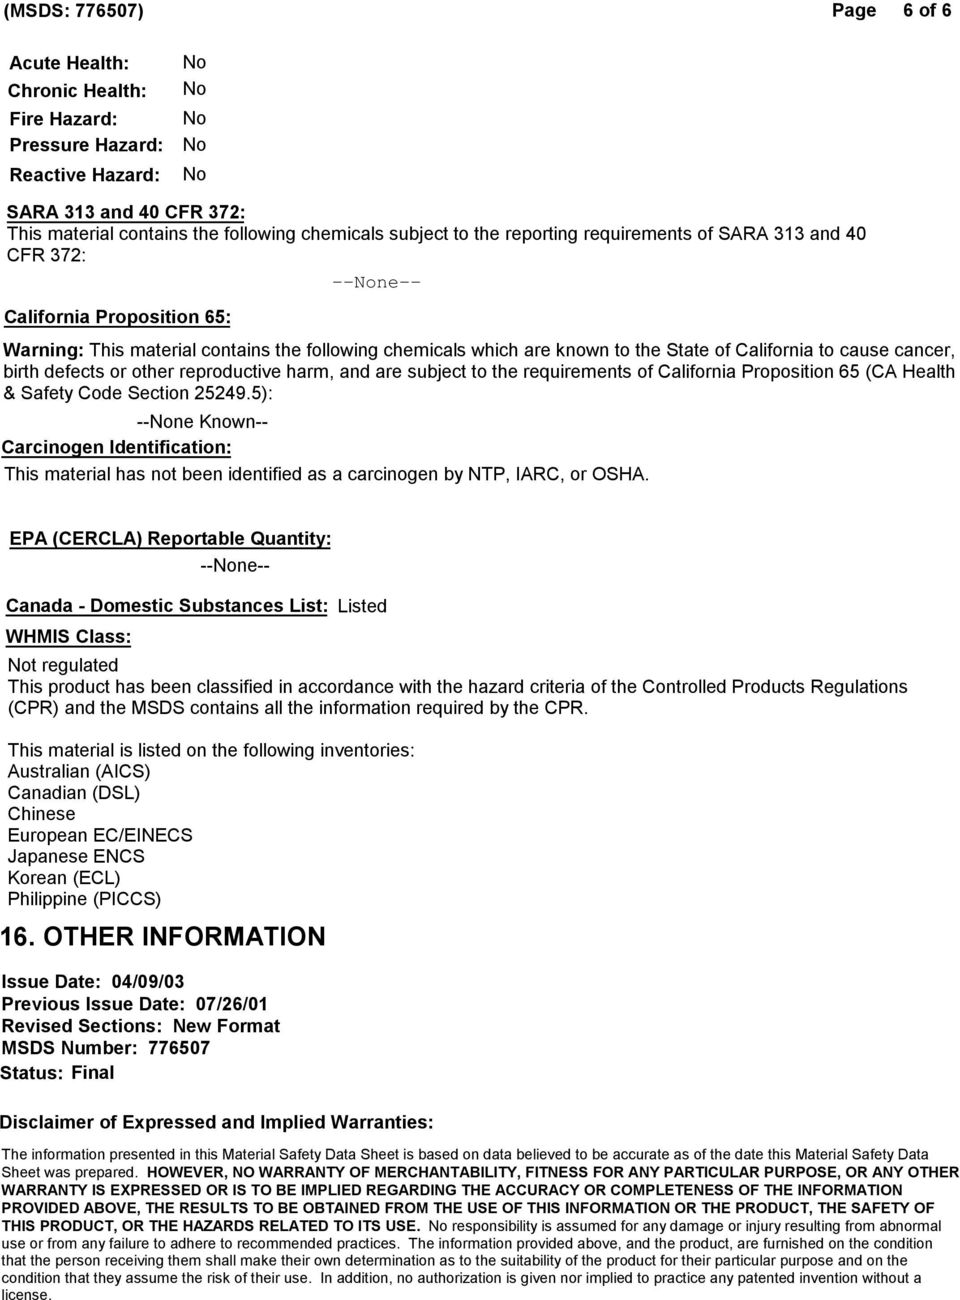 MATERIAL SAFETY DATA SHEET Penreco Drakeol Mineral Oil - USP